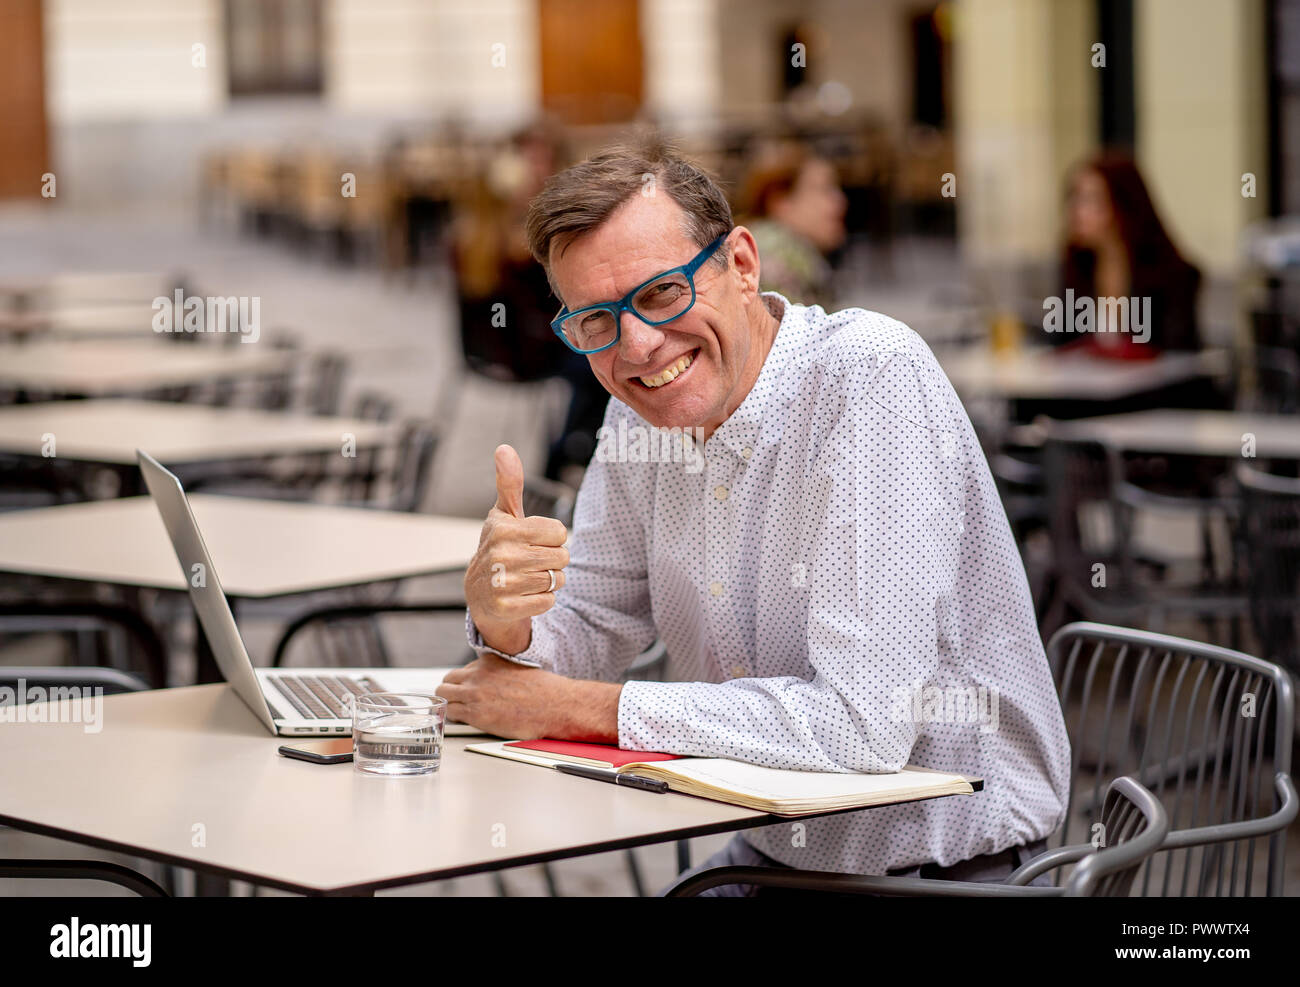 Cheerful Smiling Old Man Working On Computer While Having Coffee In